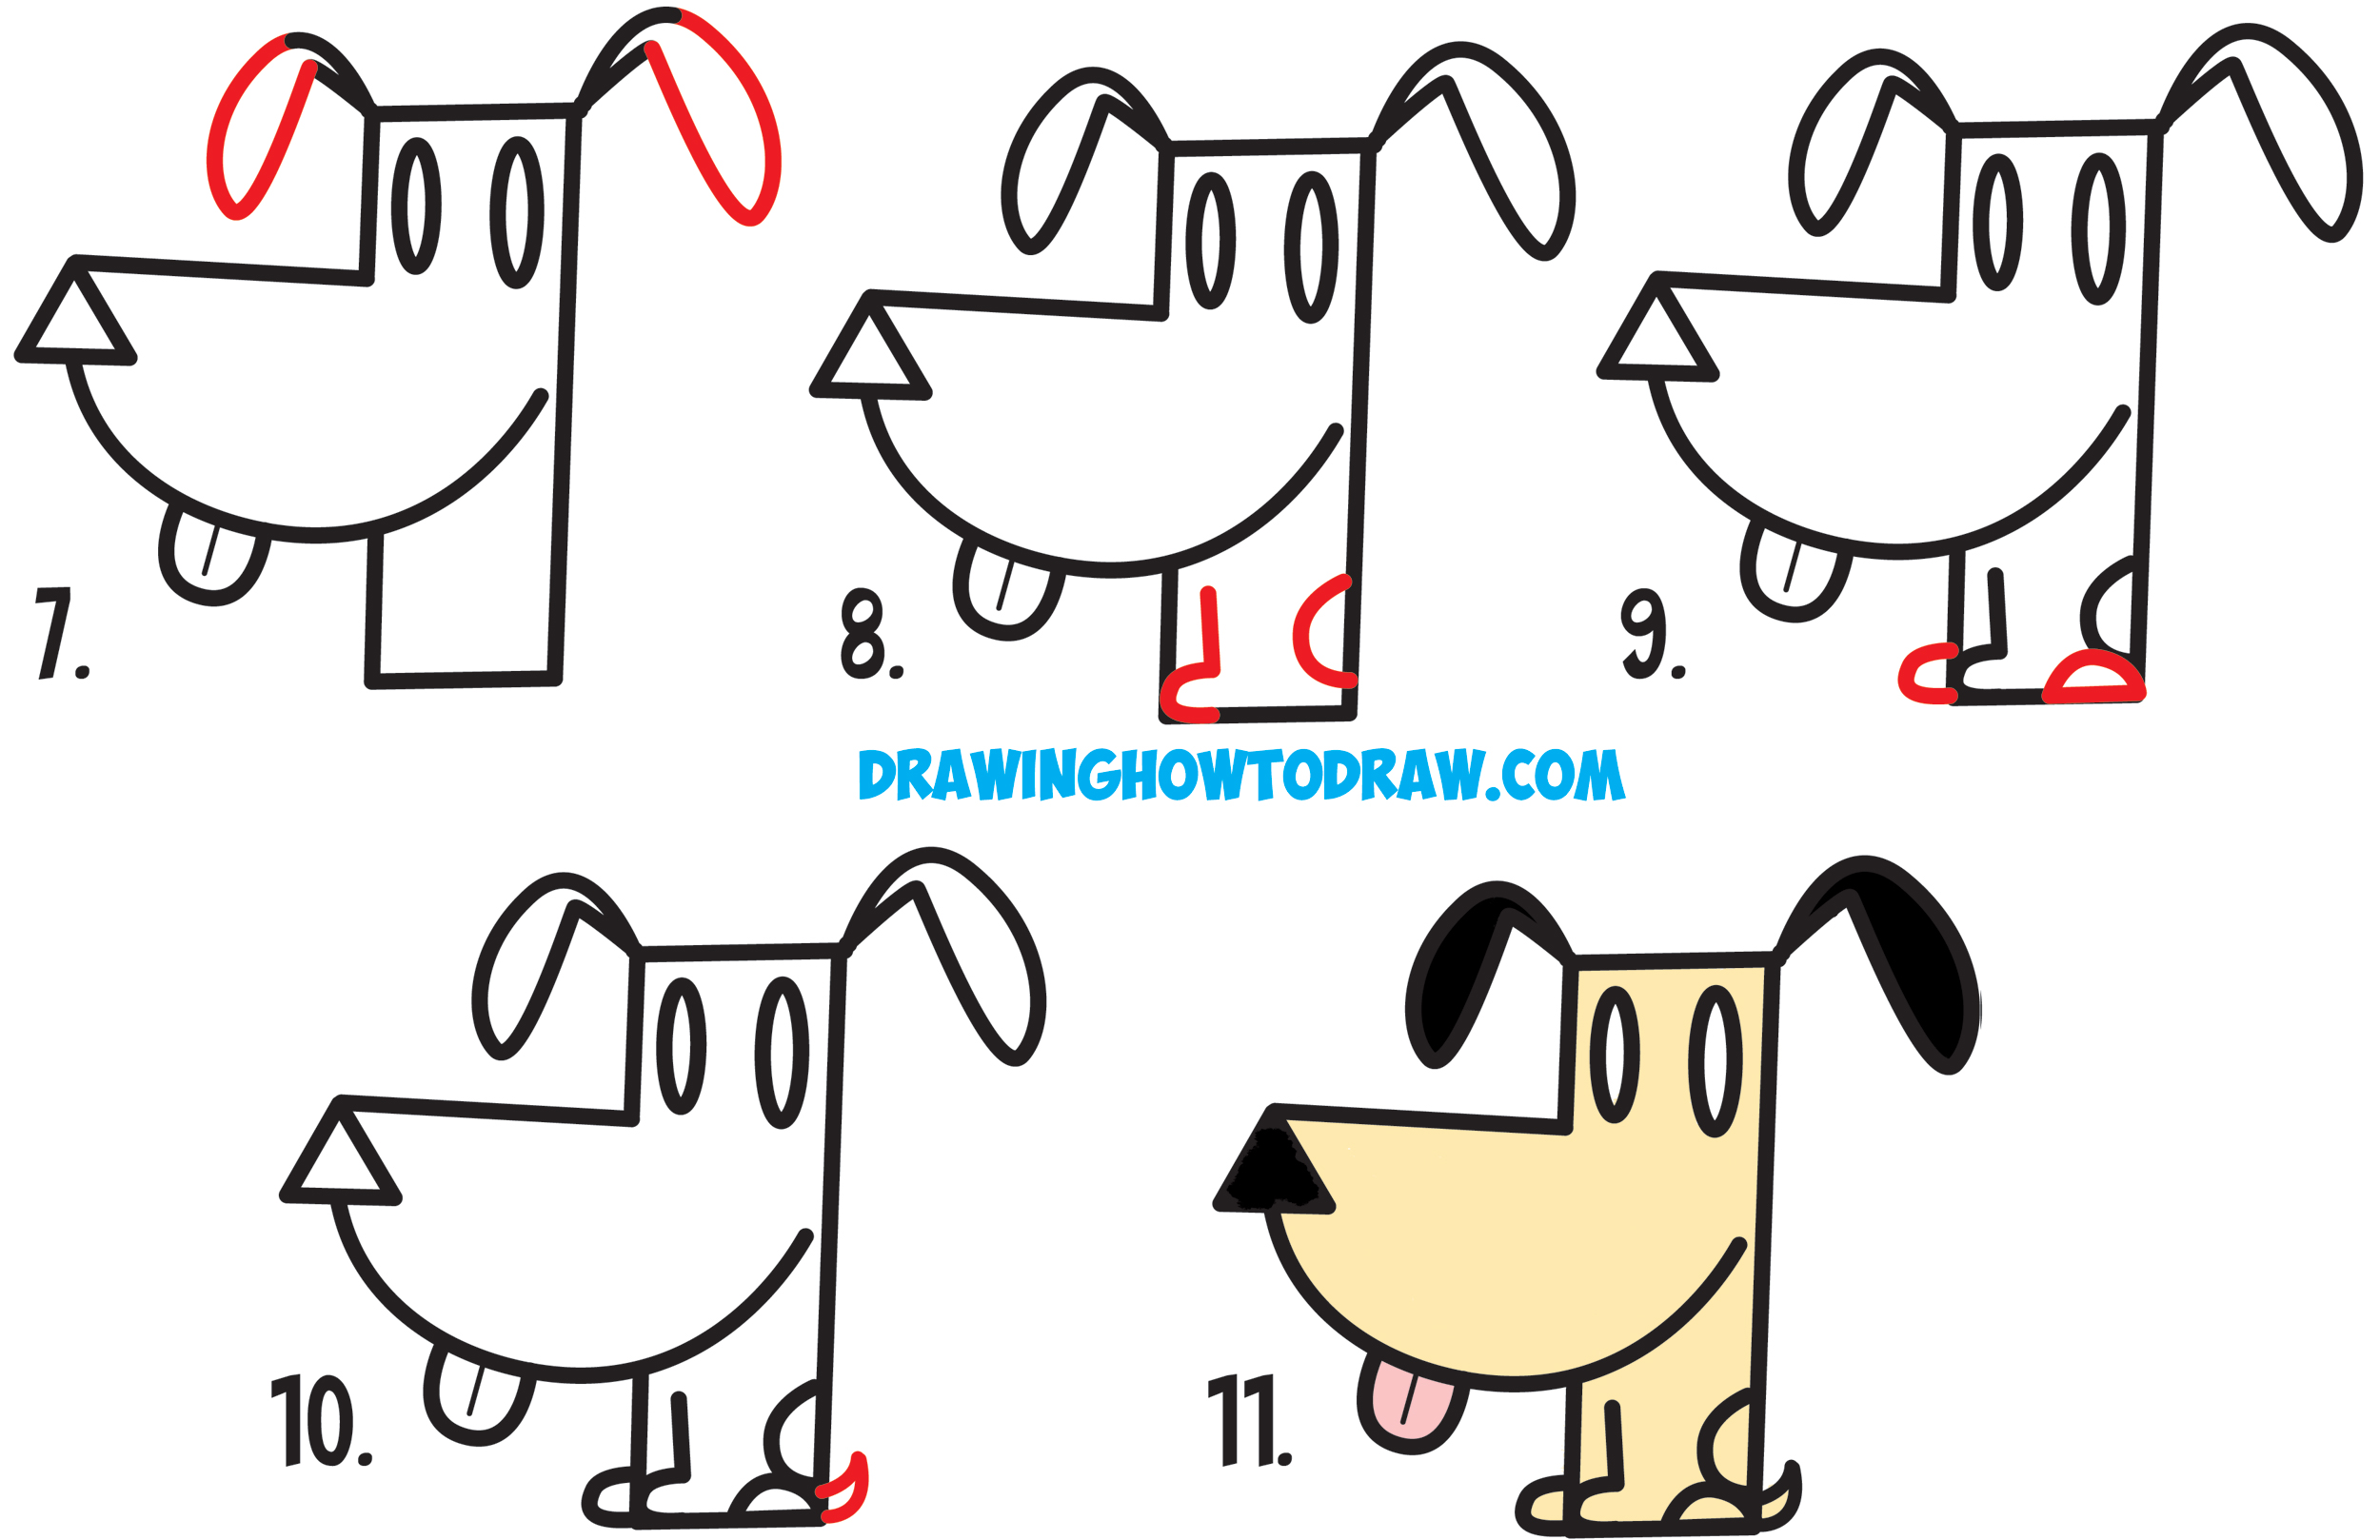 How To Make A Cartoon Dog Learn How To Draw A Cartoon Dog From An